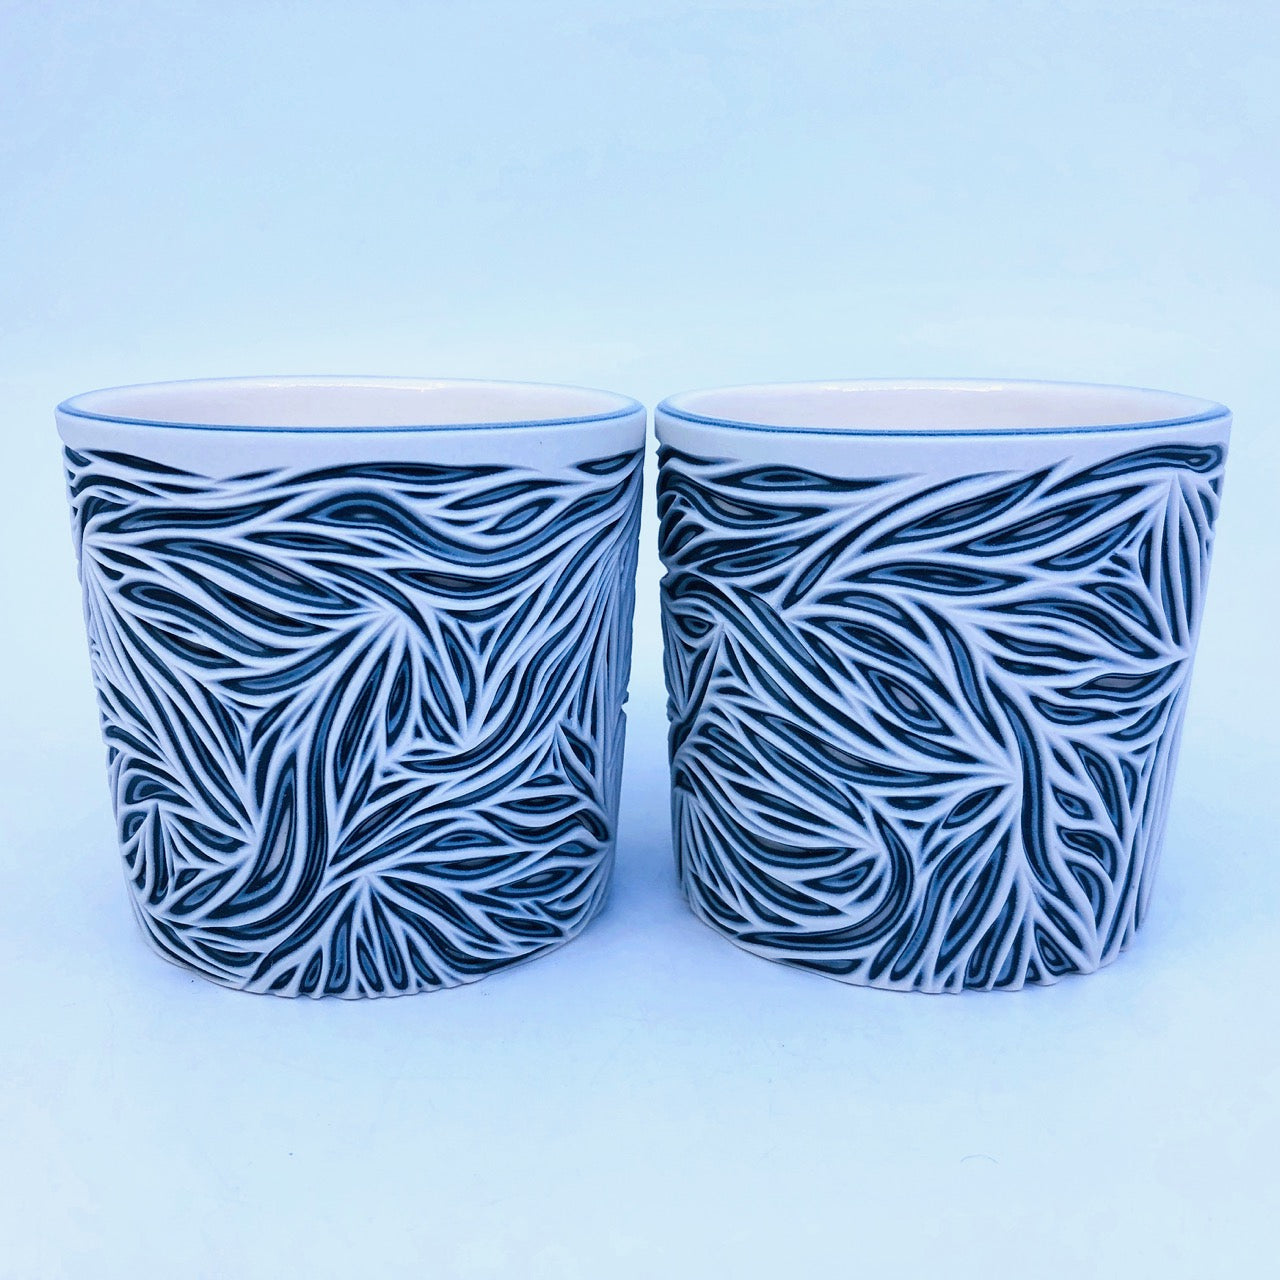 Intricate White and Black 5 Layer Tumbler